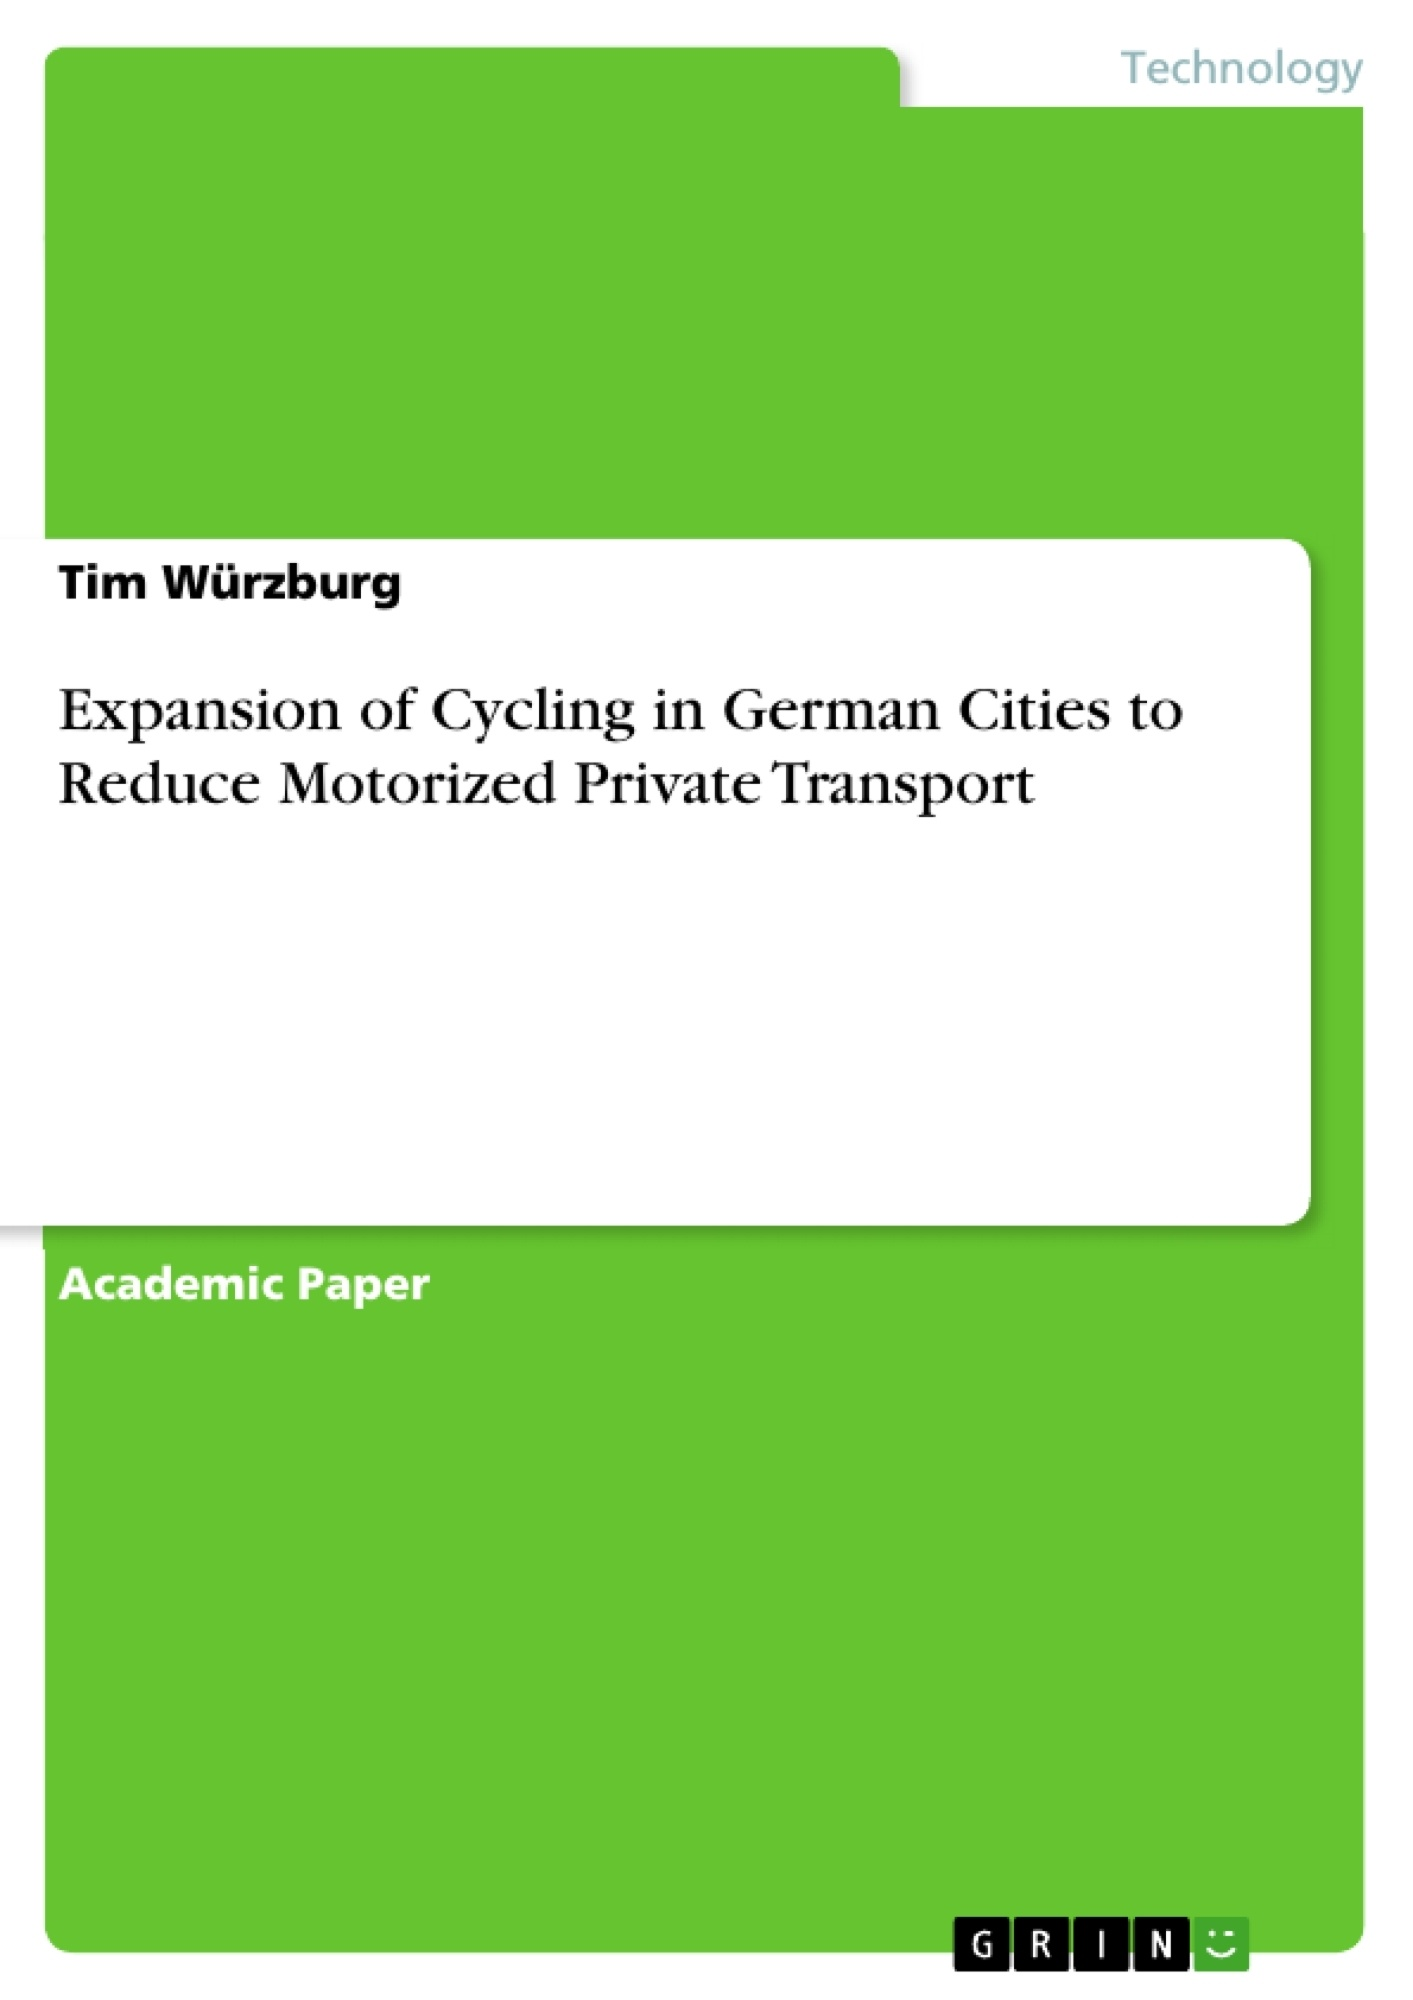 Title: Expansion of Cycling in German Cities to Reduce Motorized Private Transport